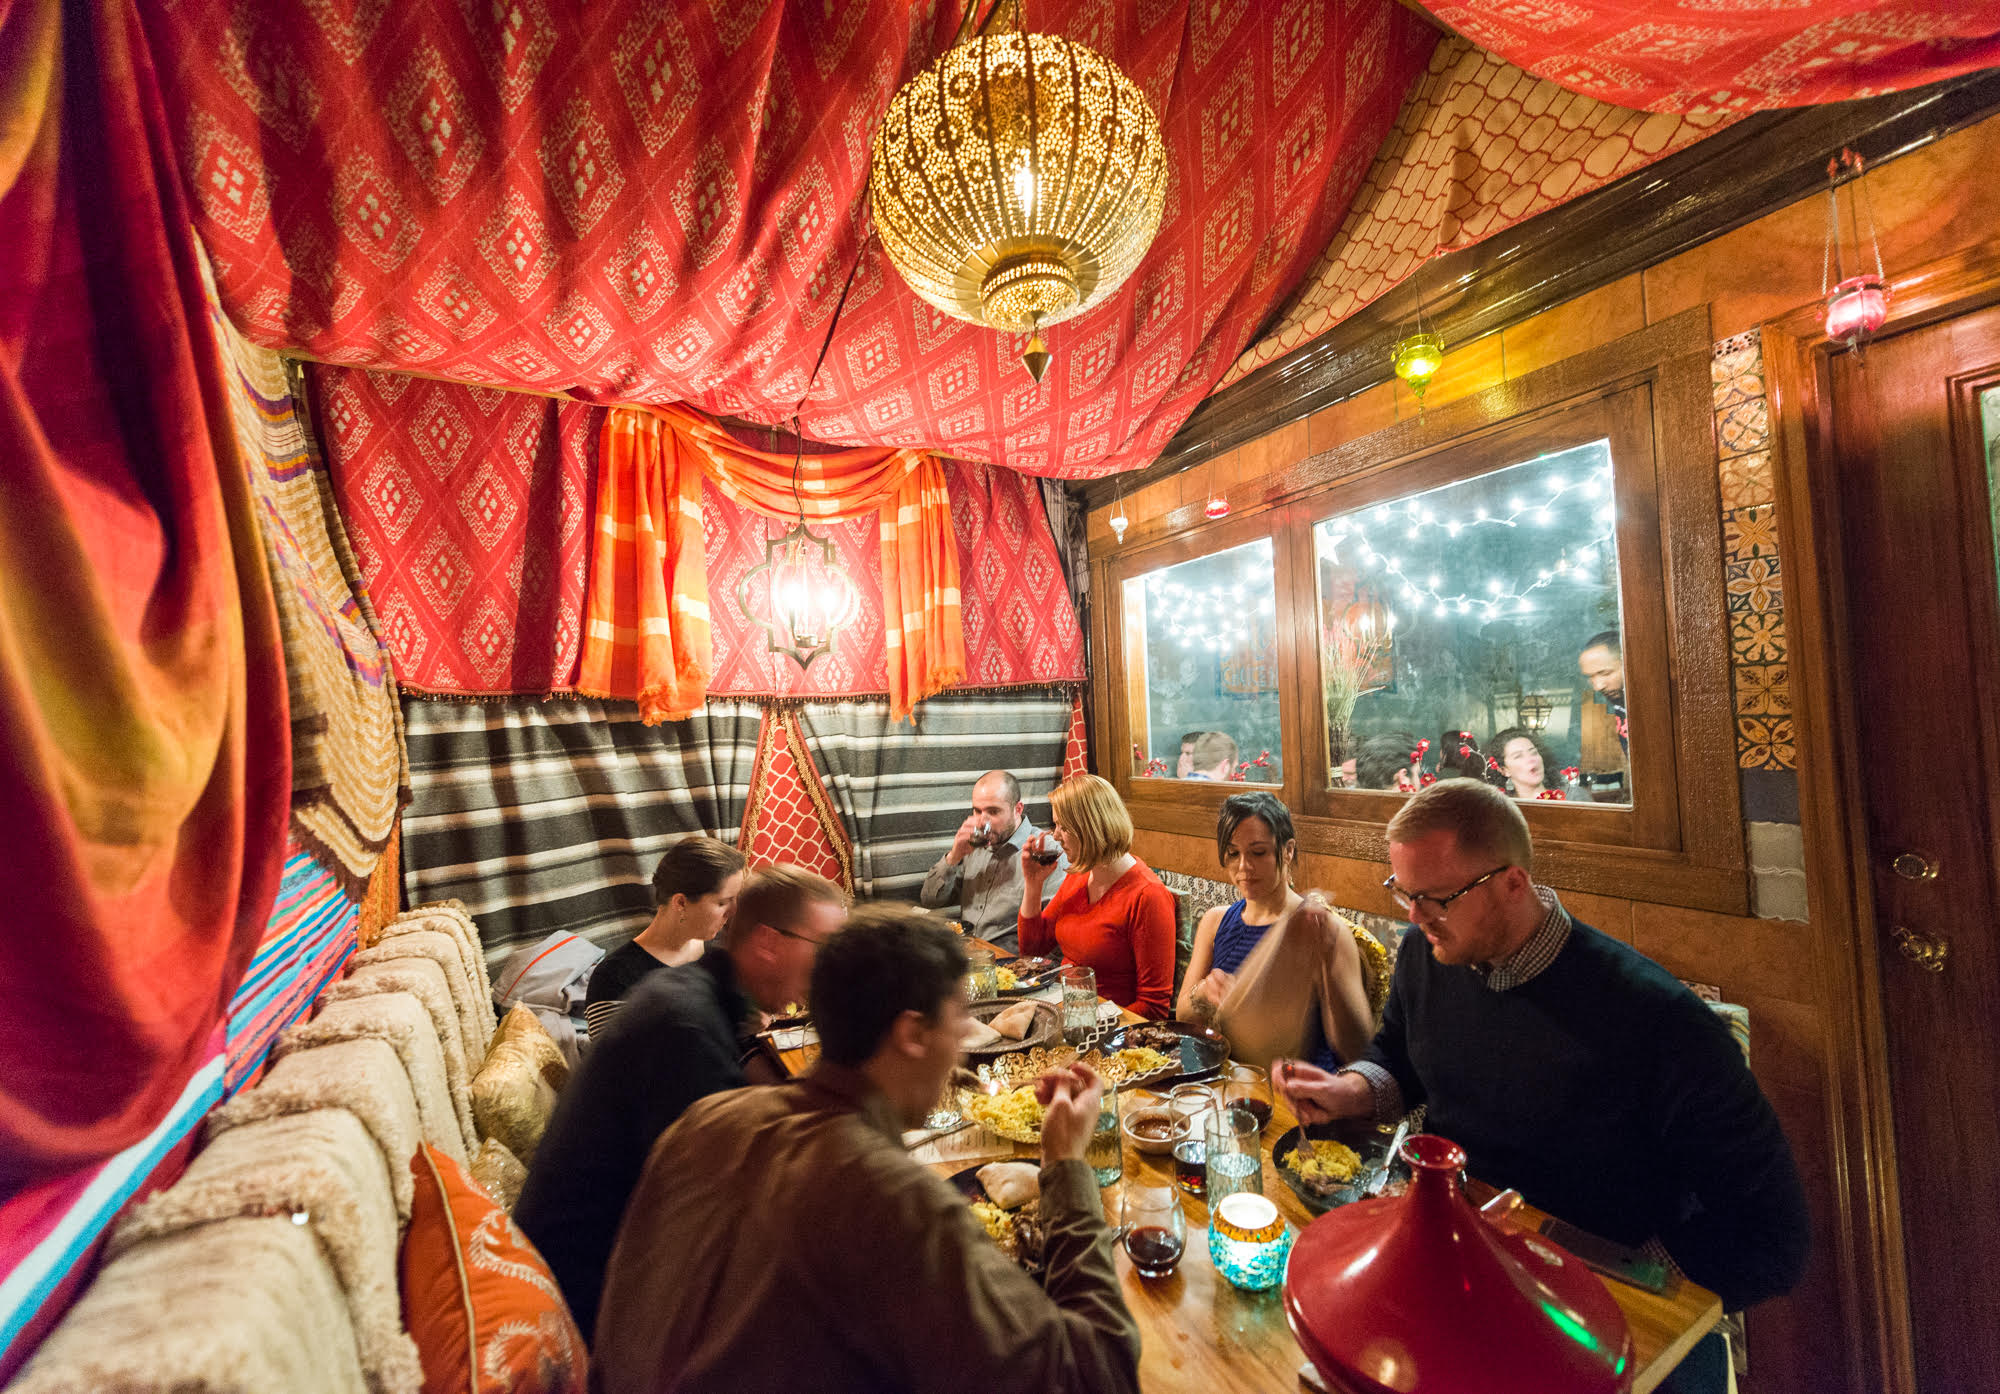 Inside the tent at Compass Rose